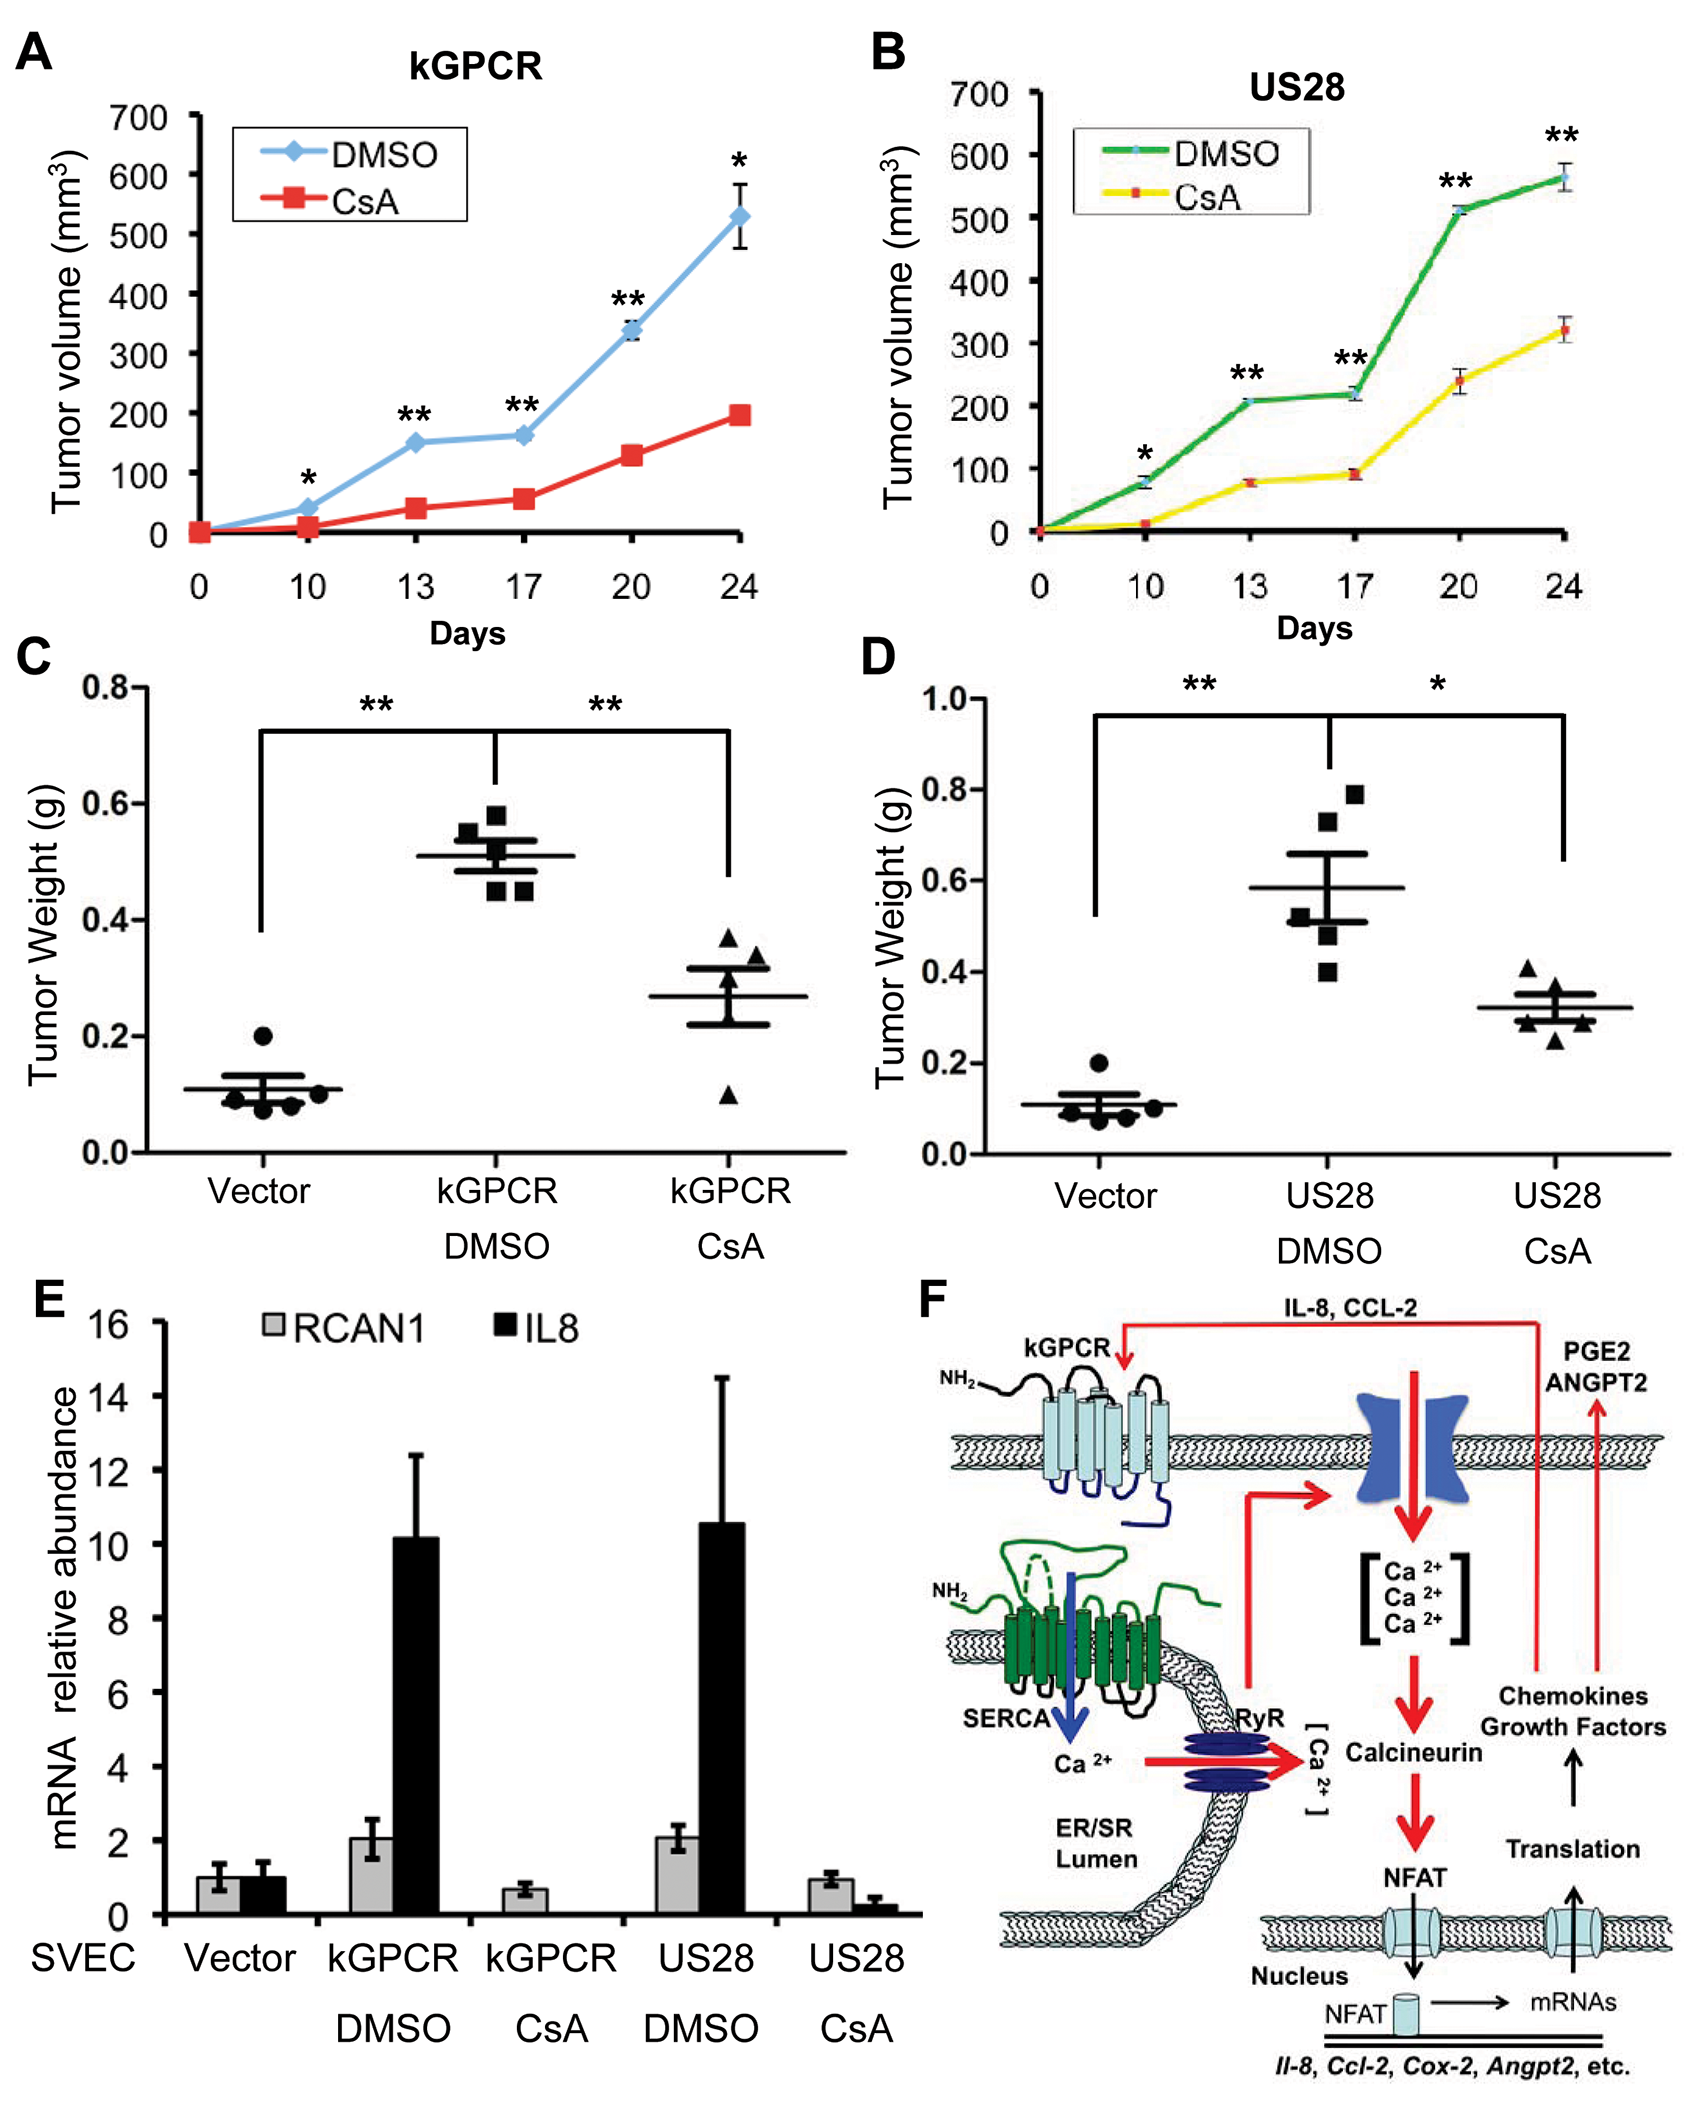 NFAT activation is critical for tumor formation induced by viral GPCRs.